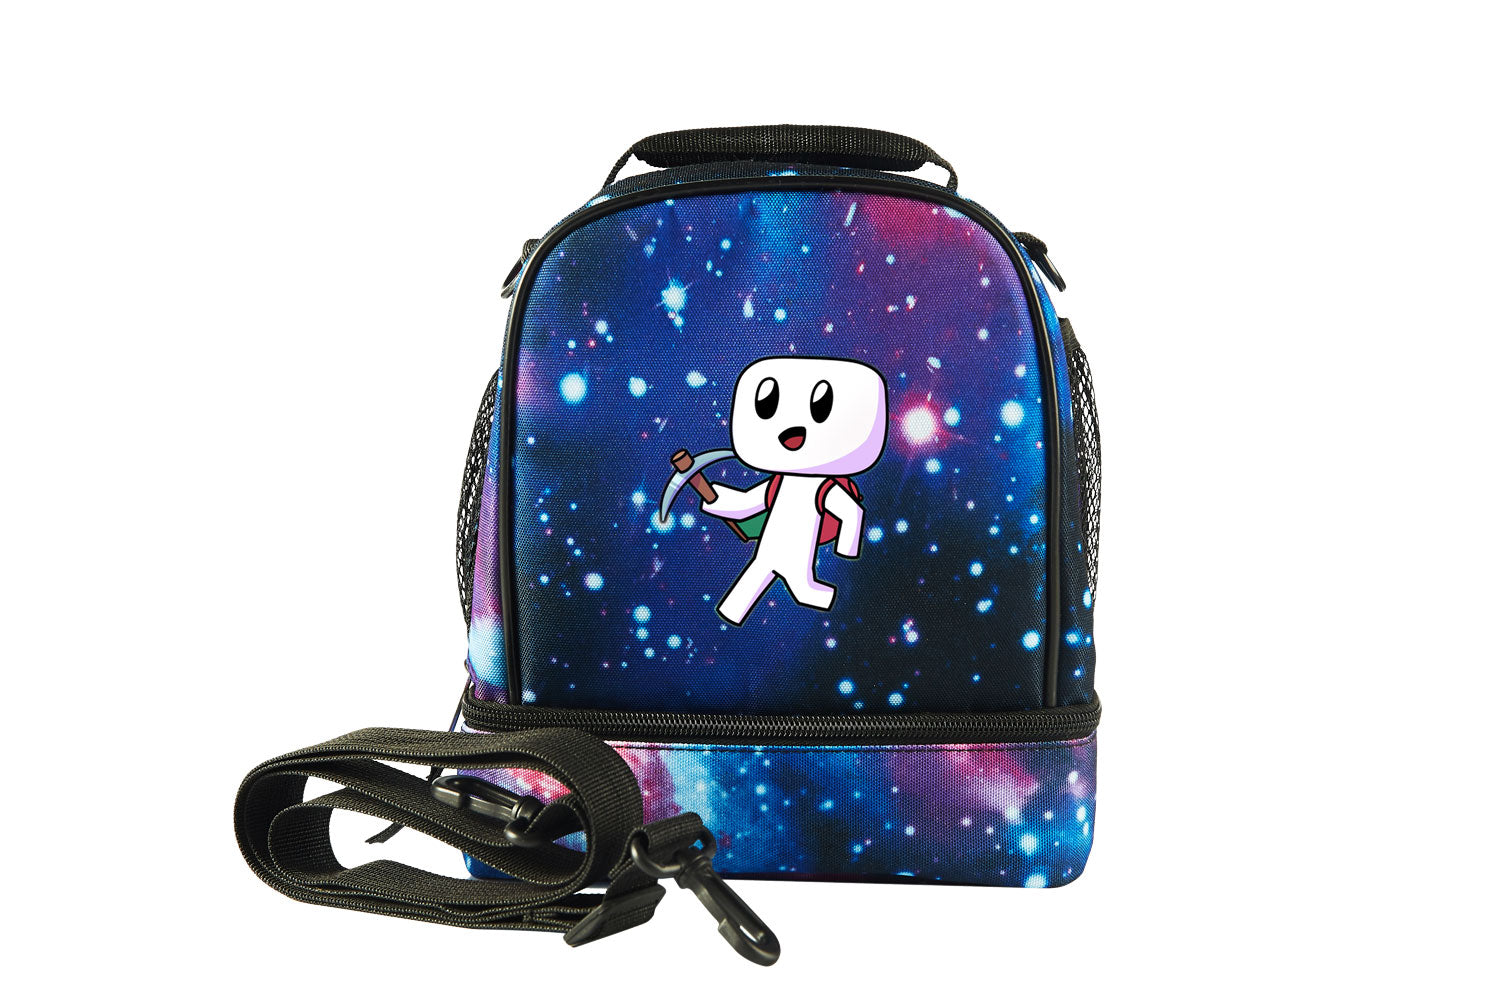 Forager Starry Sky Two Compartment Lunch Bag